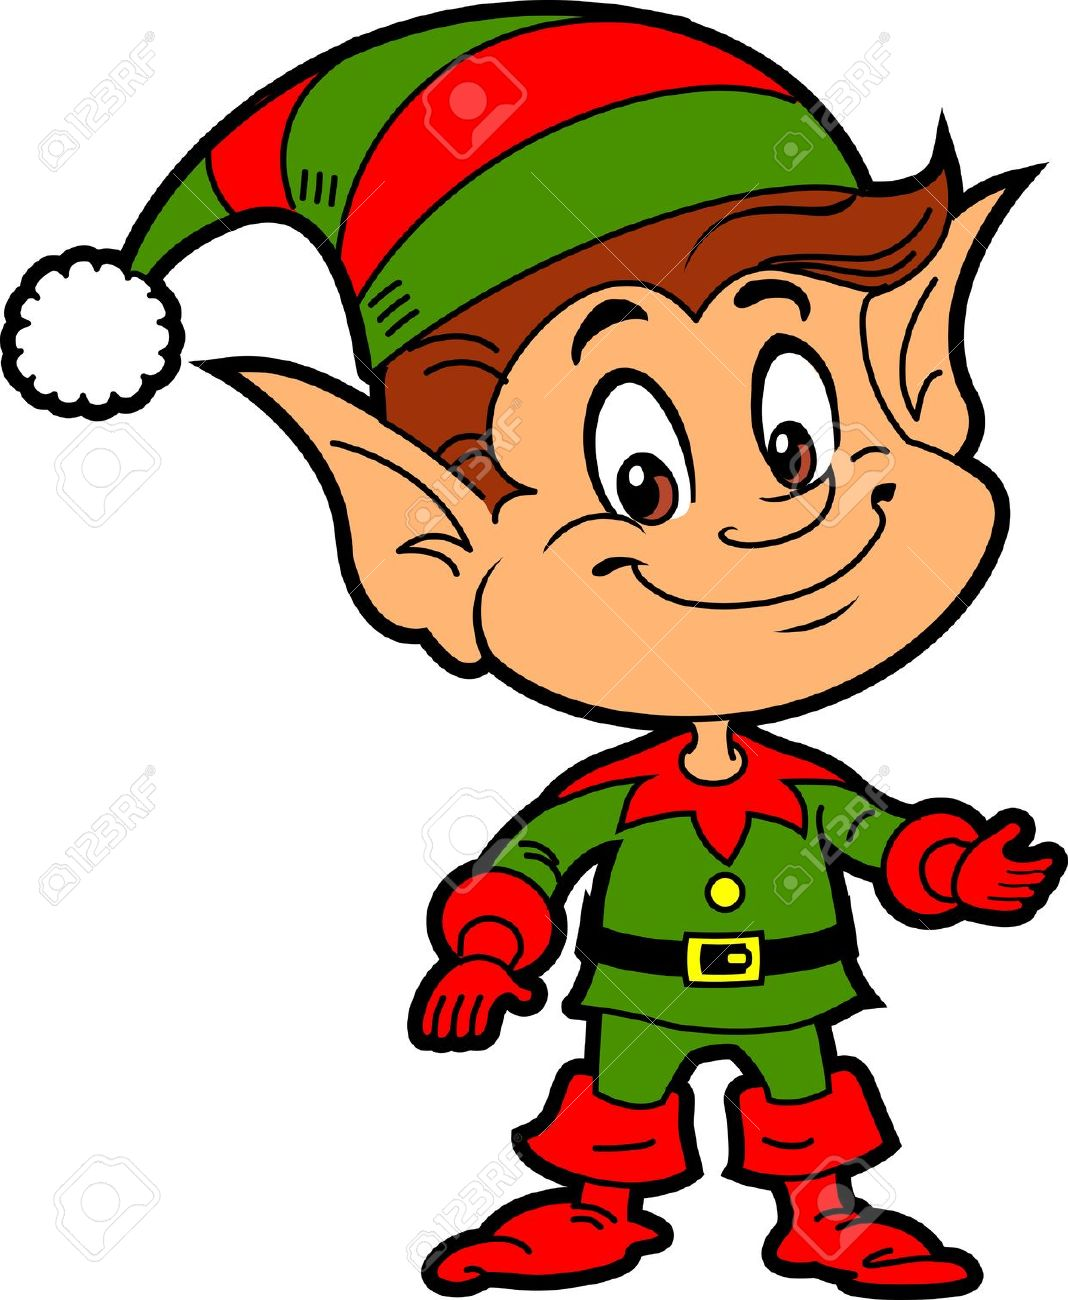 Pointed Ears clipart elven Santa  jpg Happy Stock